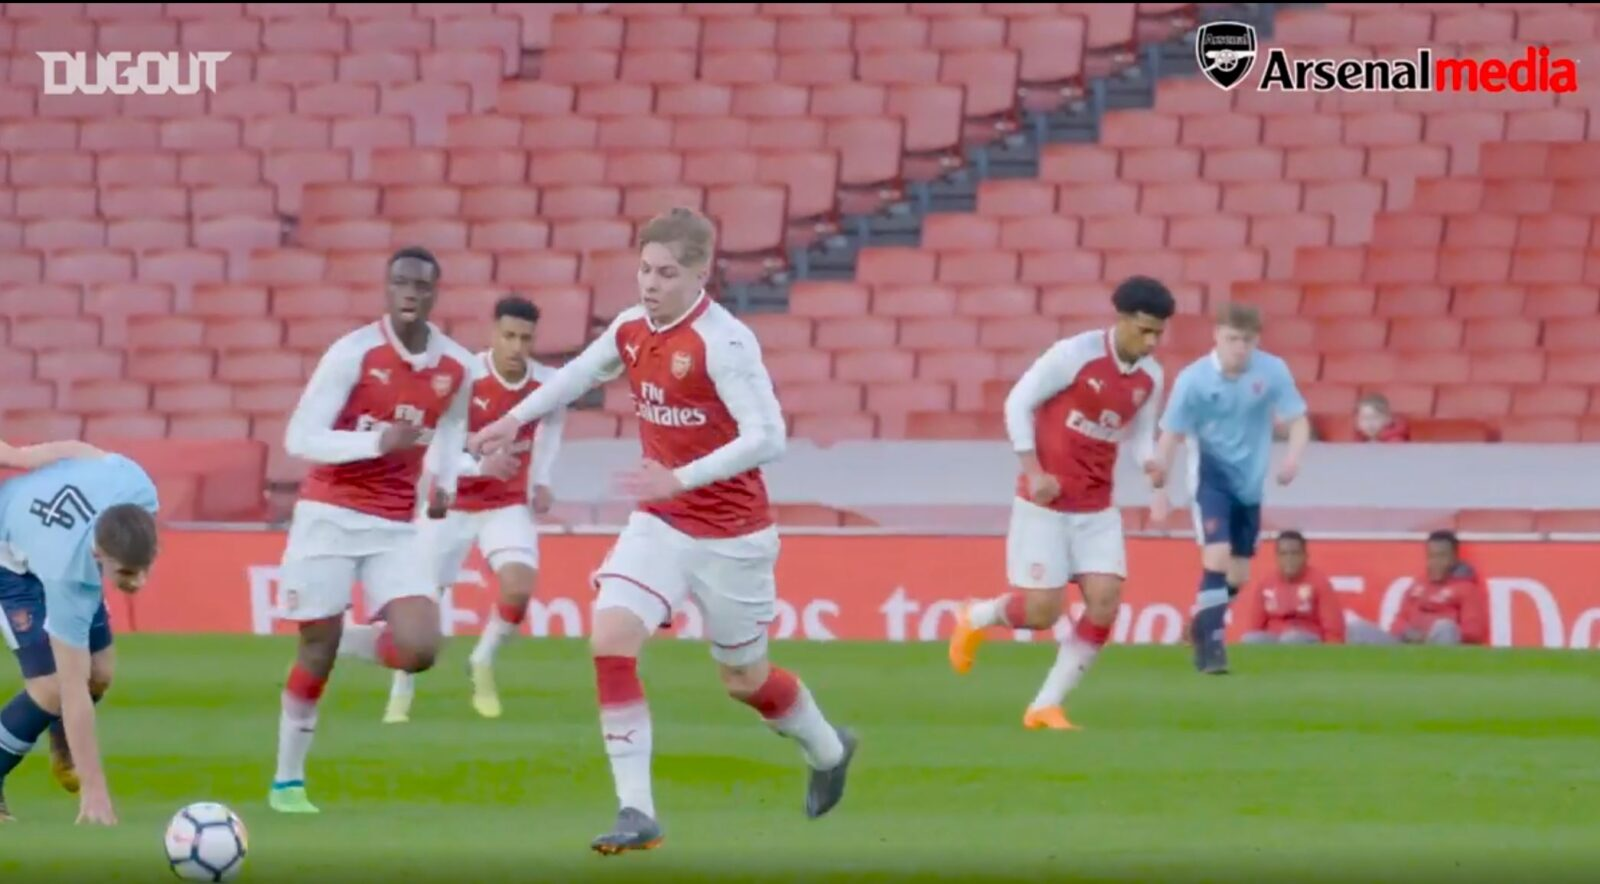 The best of Emile Smith Rowe's journey at Arsenal